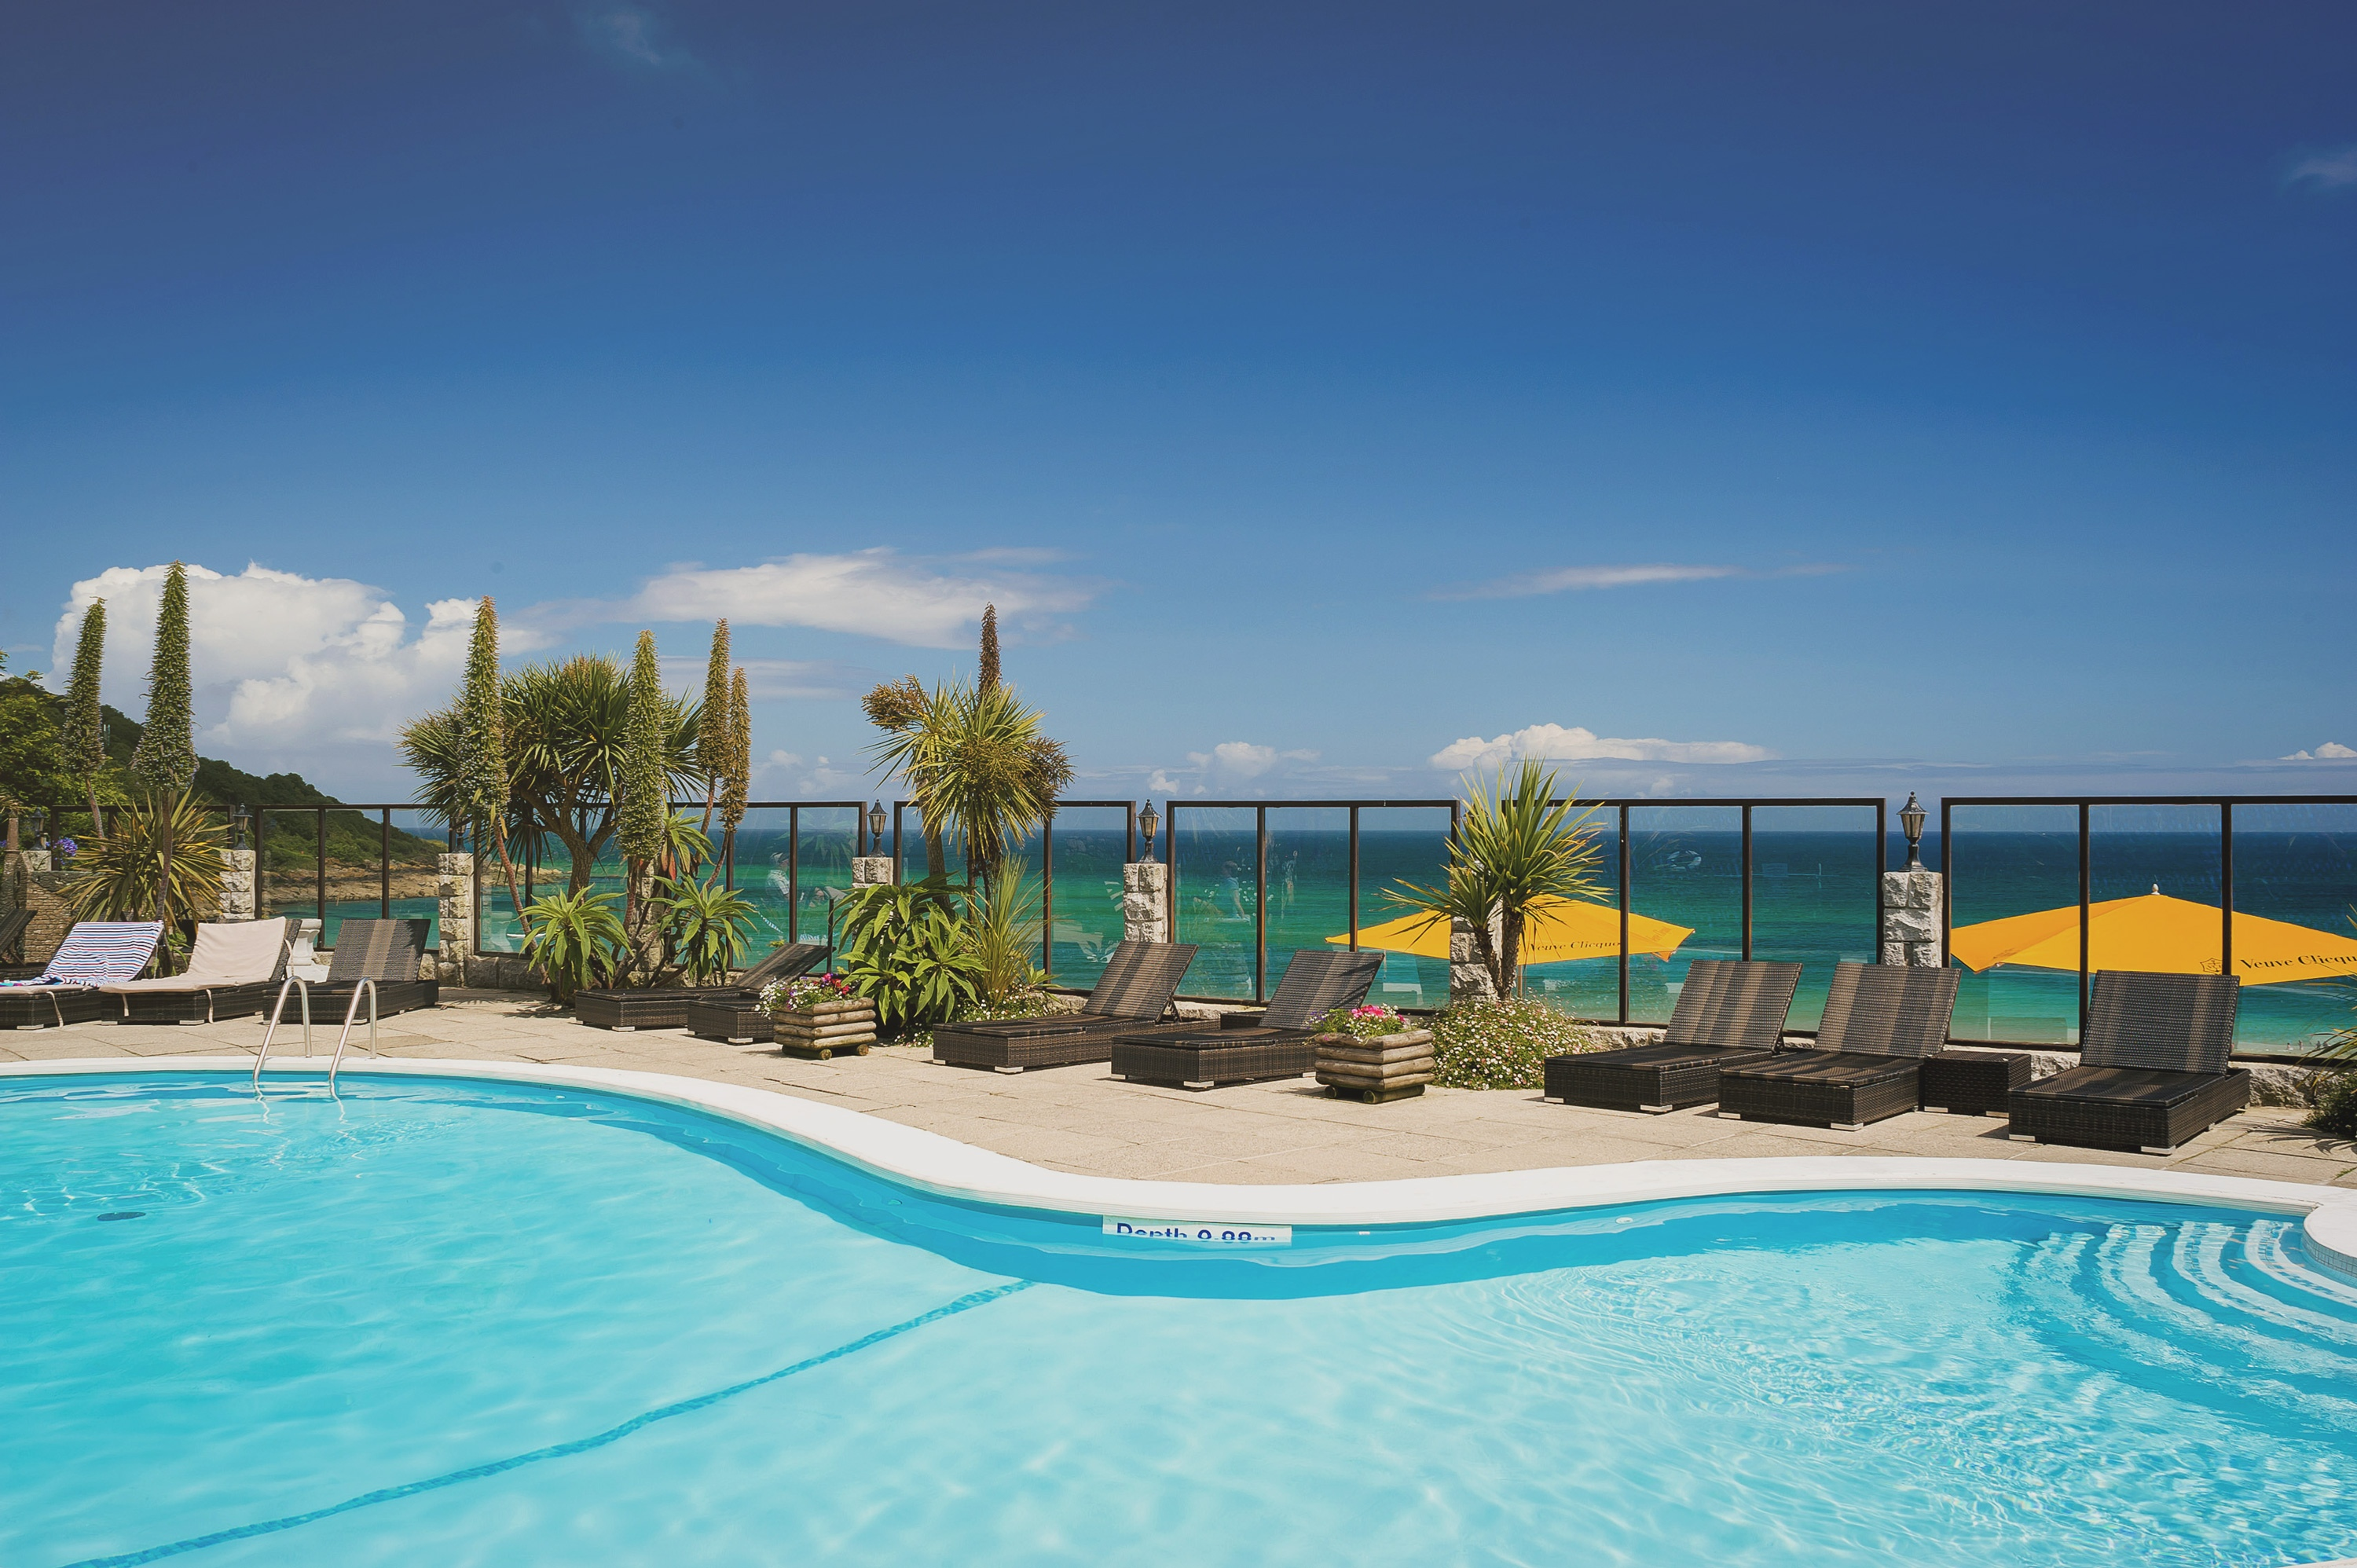 C Bay Spa heated pool overlooking St Ives Bay